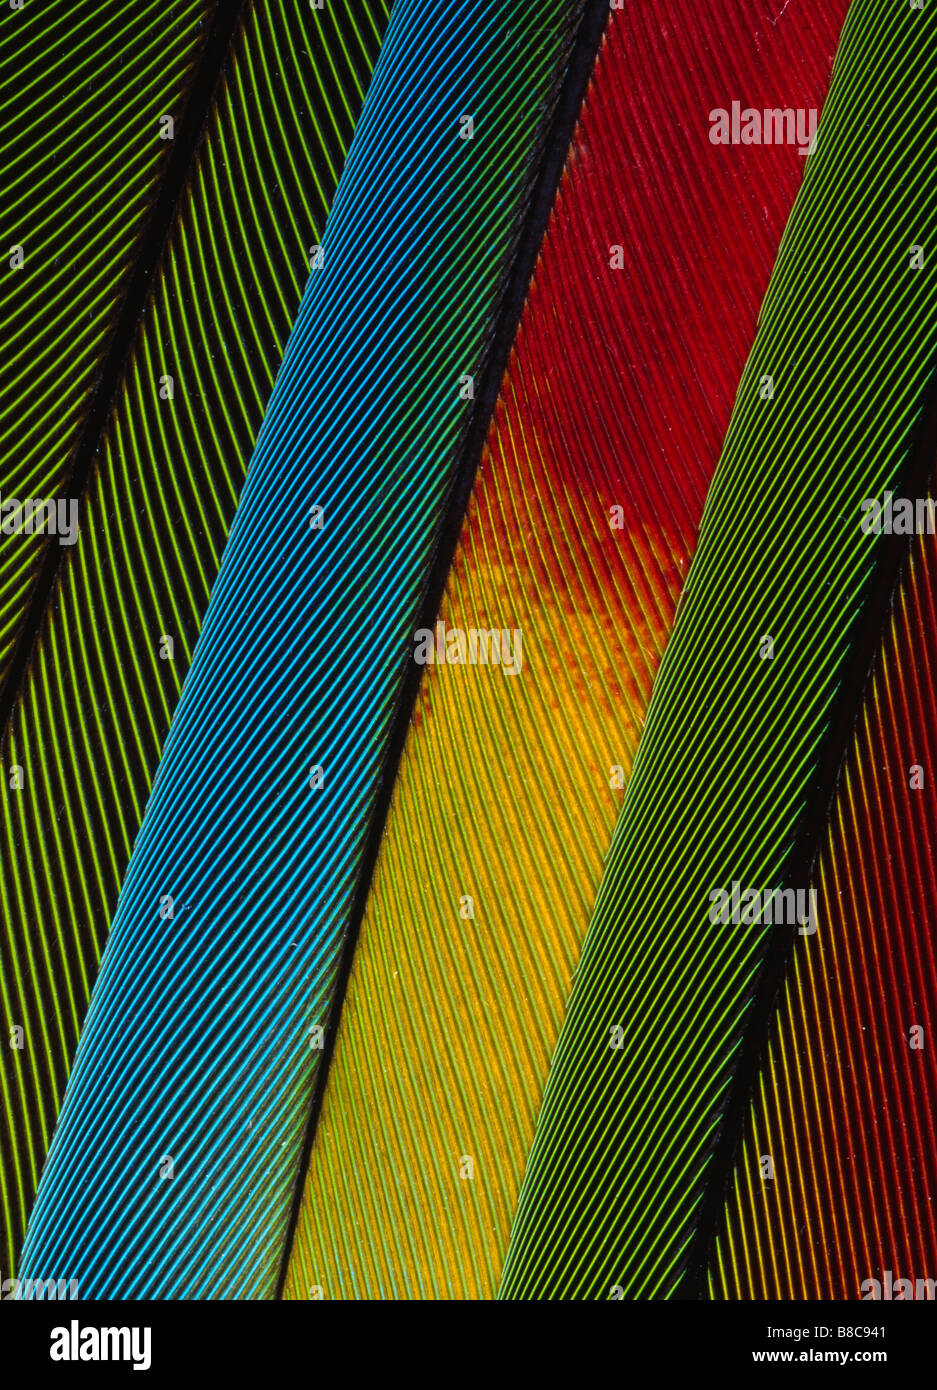 PLUMES DE PERROQUET Photo Stock